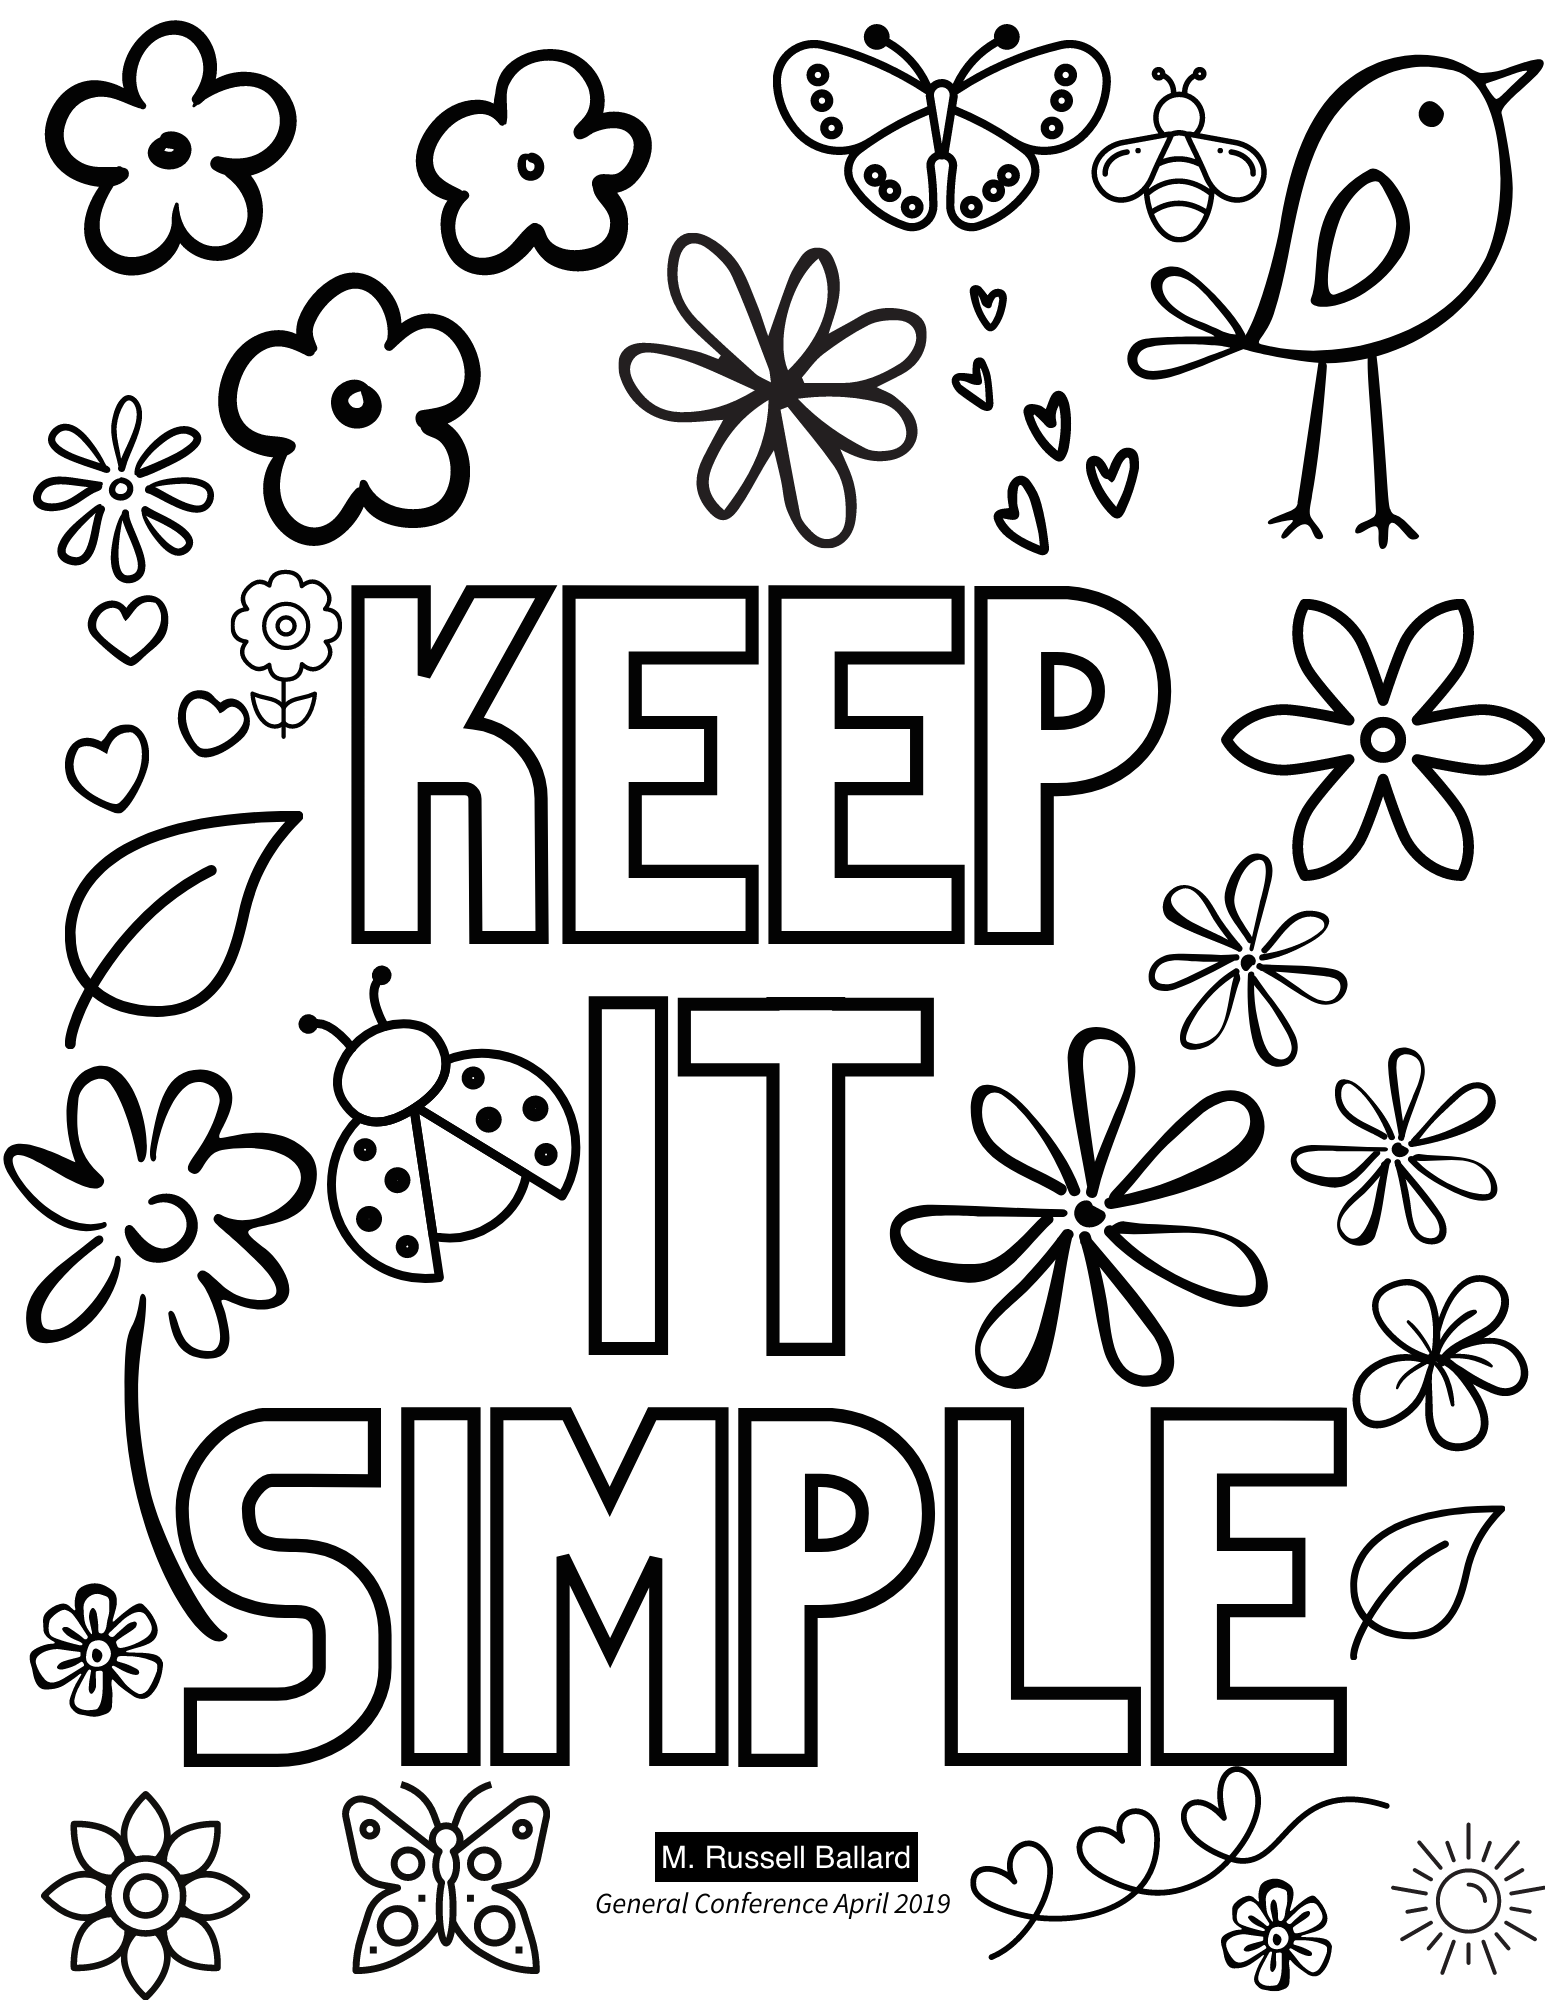 keep it simple m russell ballard general conference quote, general conference coloring sheets, general conference quotes